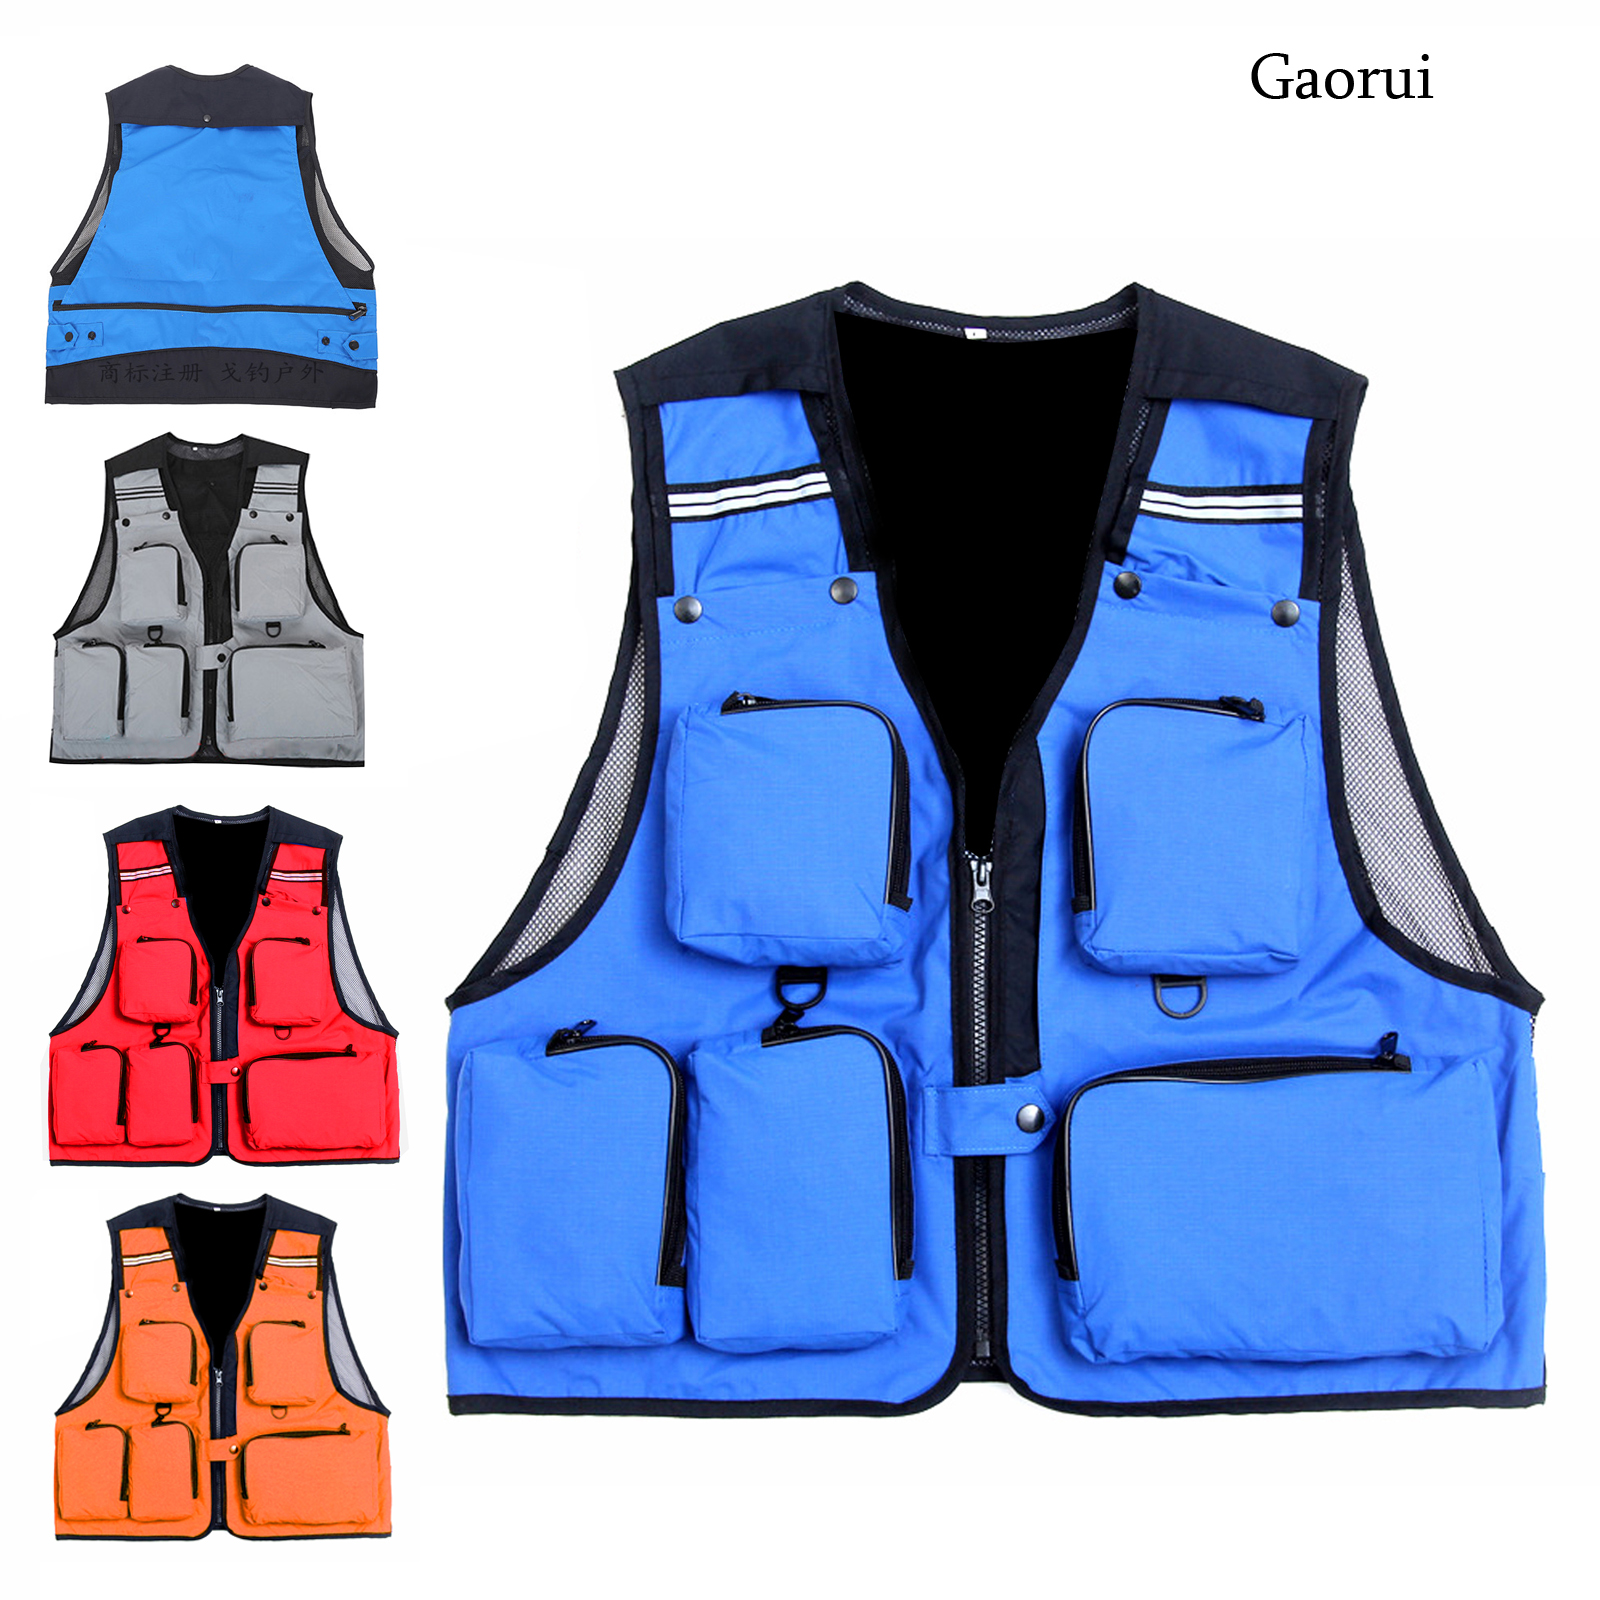 Multifunction Fishing Vest With Pockets Outdoor Sports High Quality Fishing Vest Backpack Fly Fish Accessory high quality mesh safety vest with pockets for women man